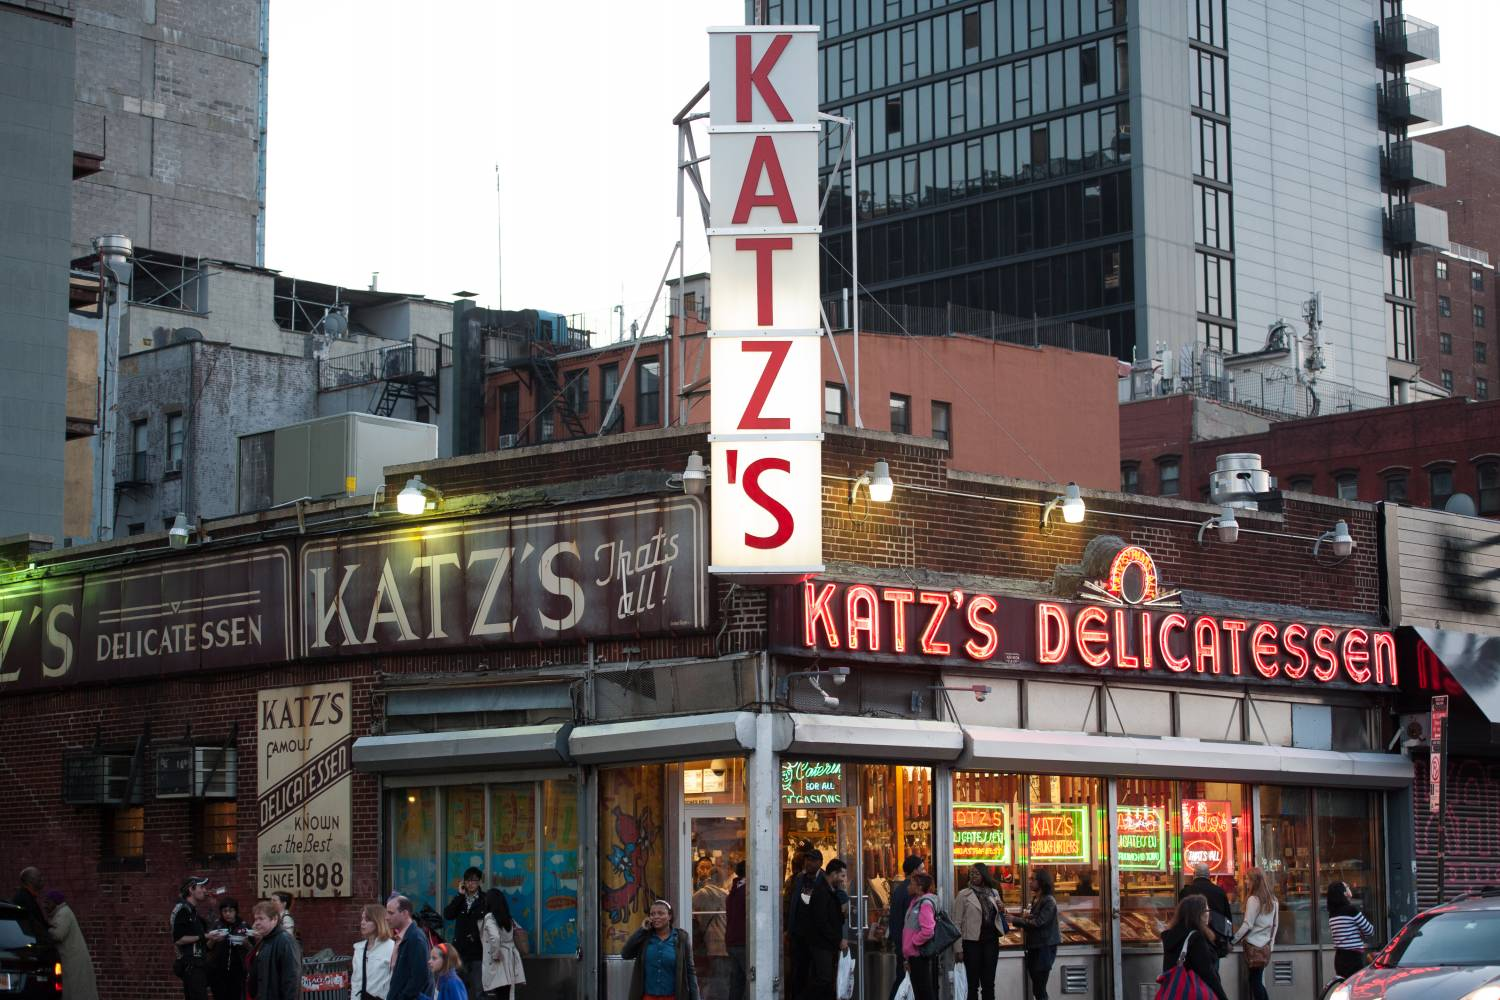 Katz's Delicatessen a New York